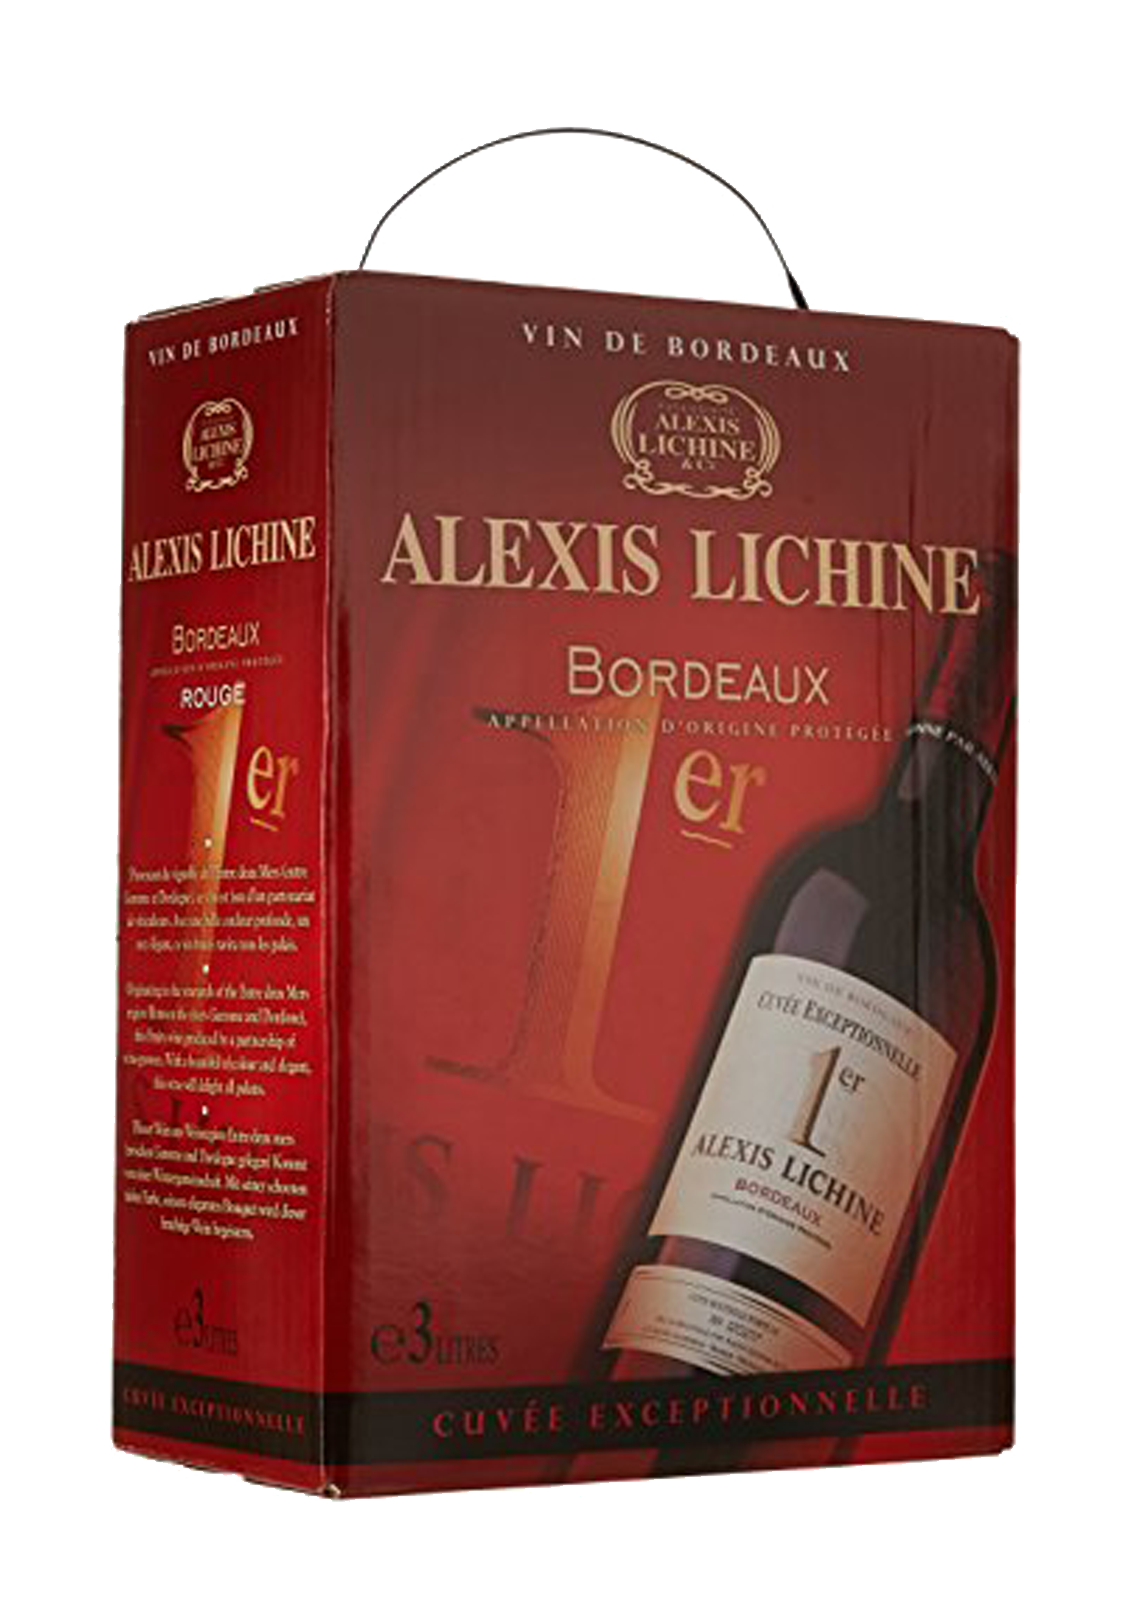 ALIXIS LICHINE AOP BORDEAUX RED 3LT